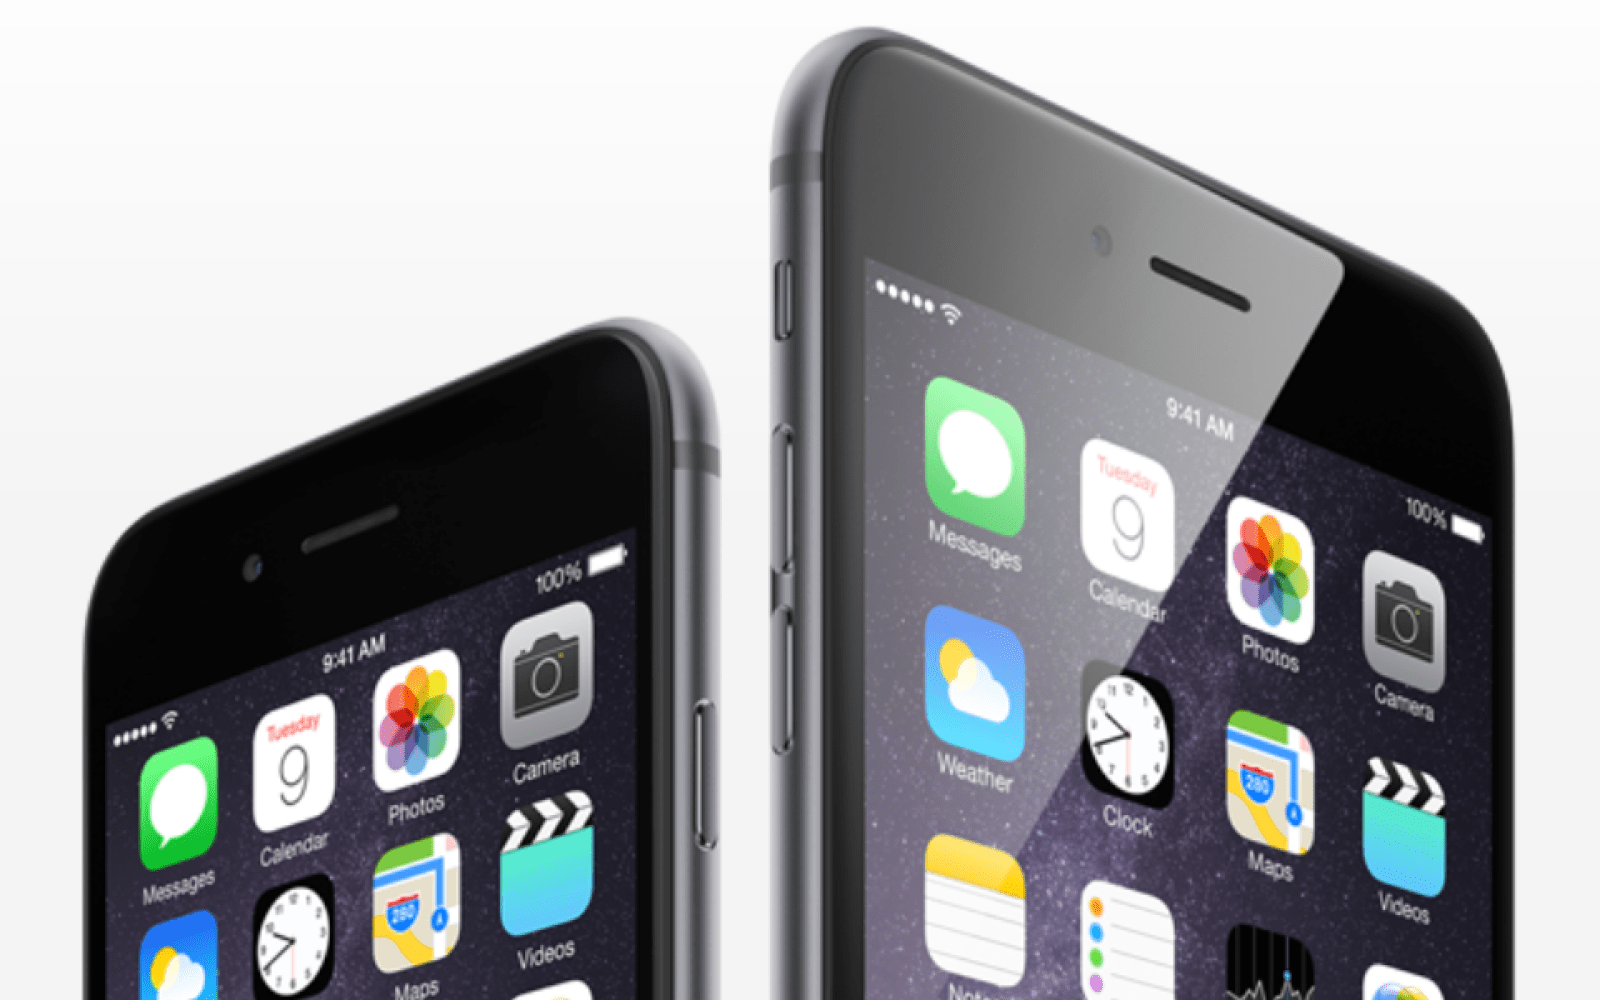 Out-of-warranty iPhone 6 and 6 Plus repair prices now available on Apple.com